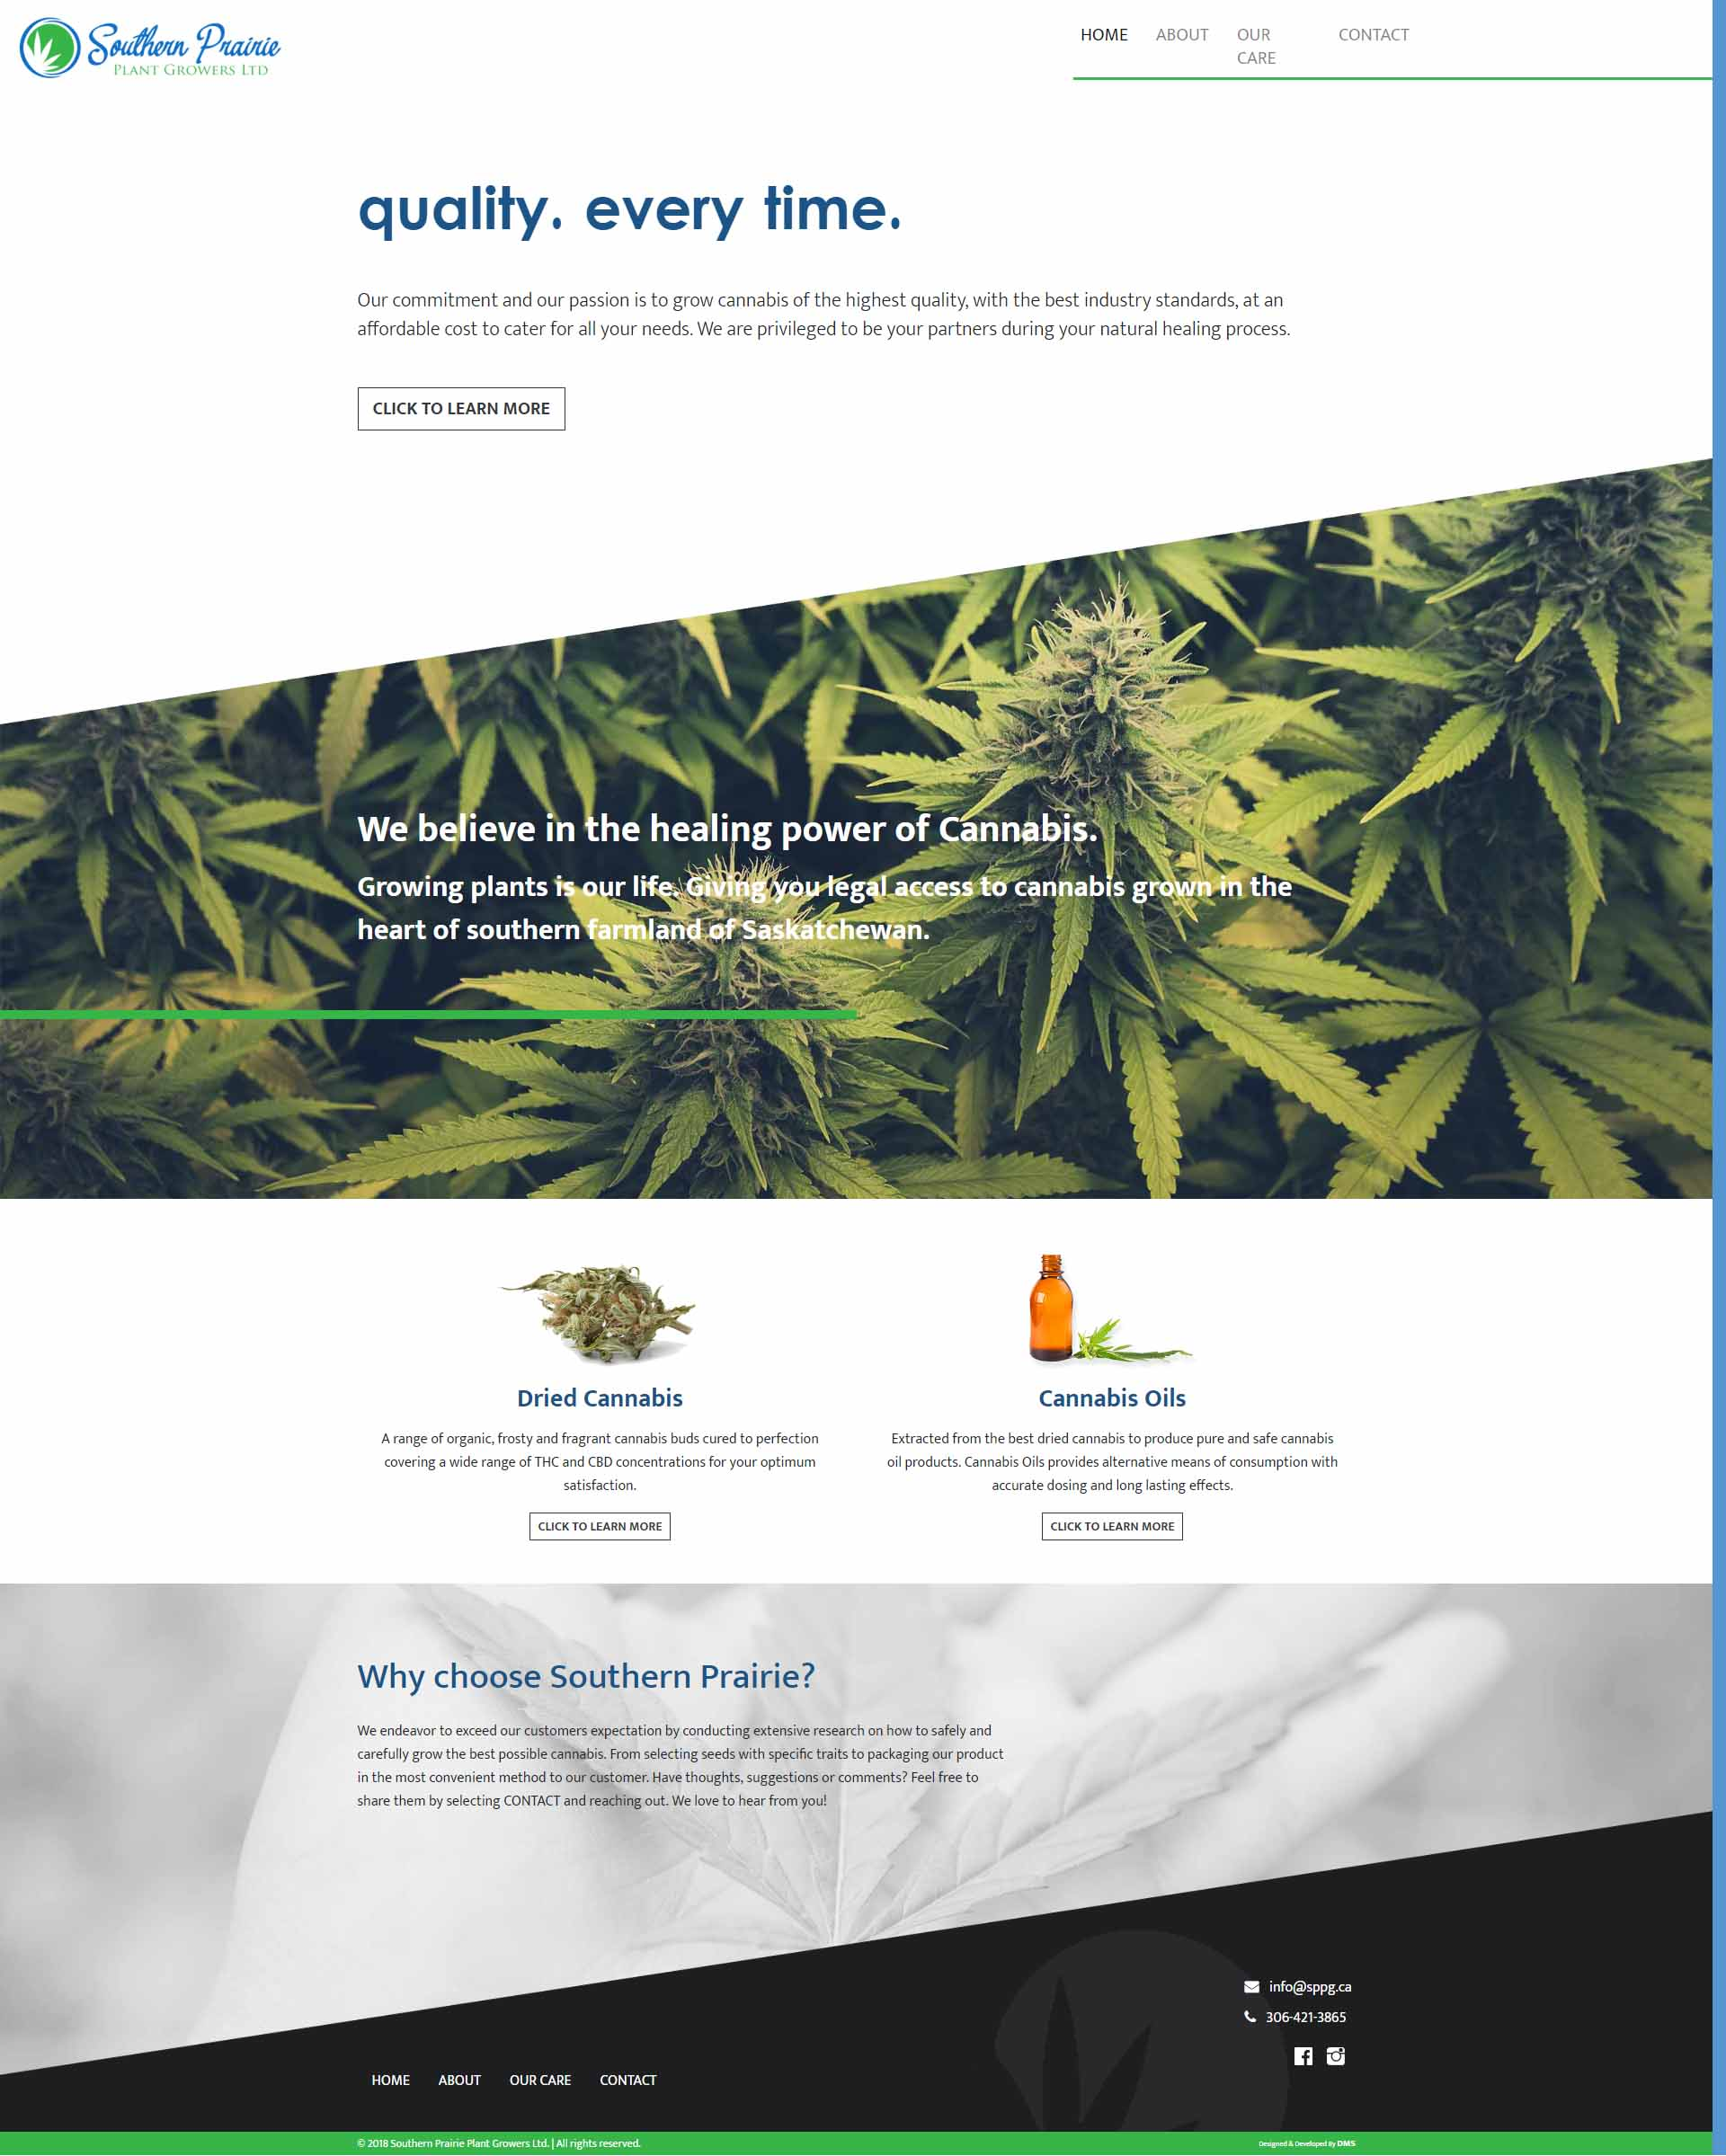 DMS Services Website Portfolio - Southern Prairie Plant Growers Ltd.